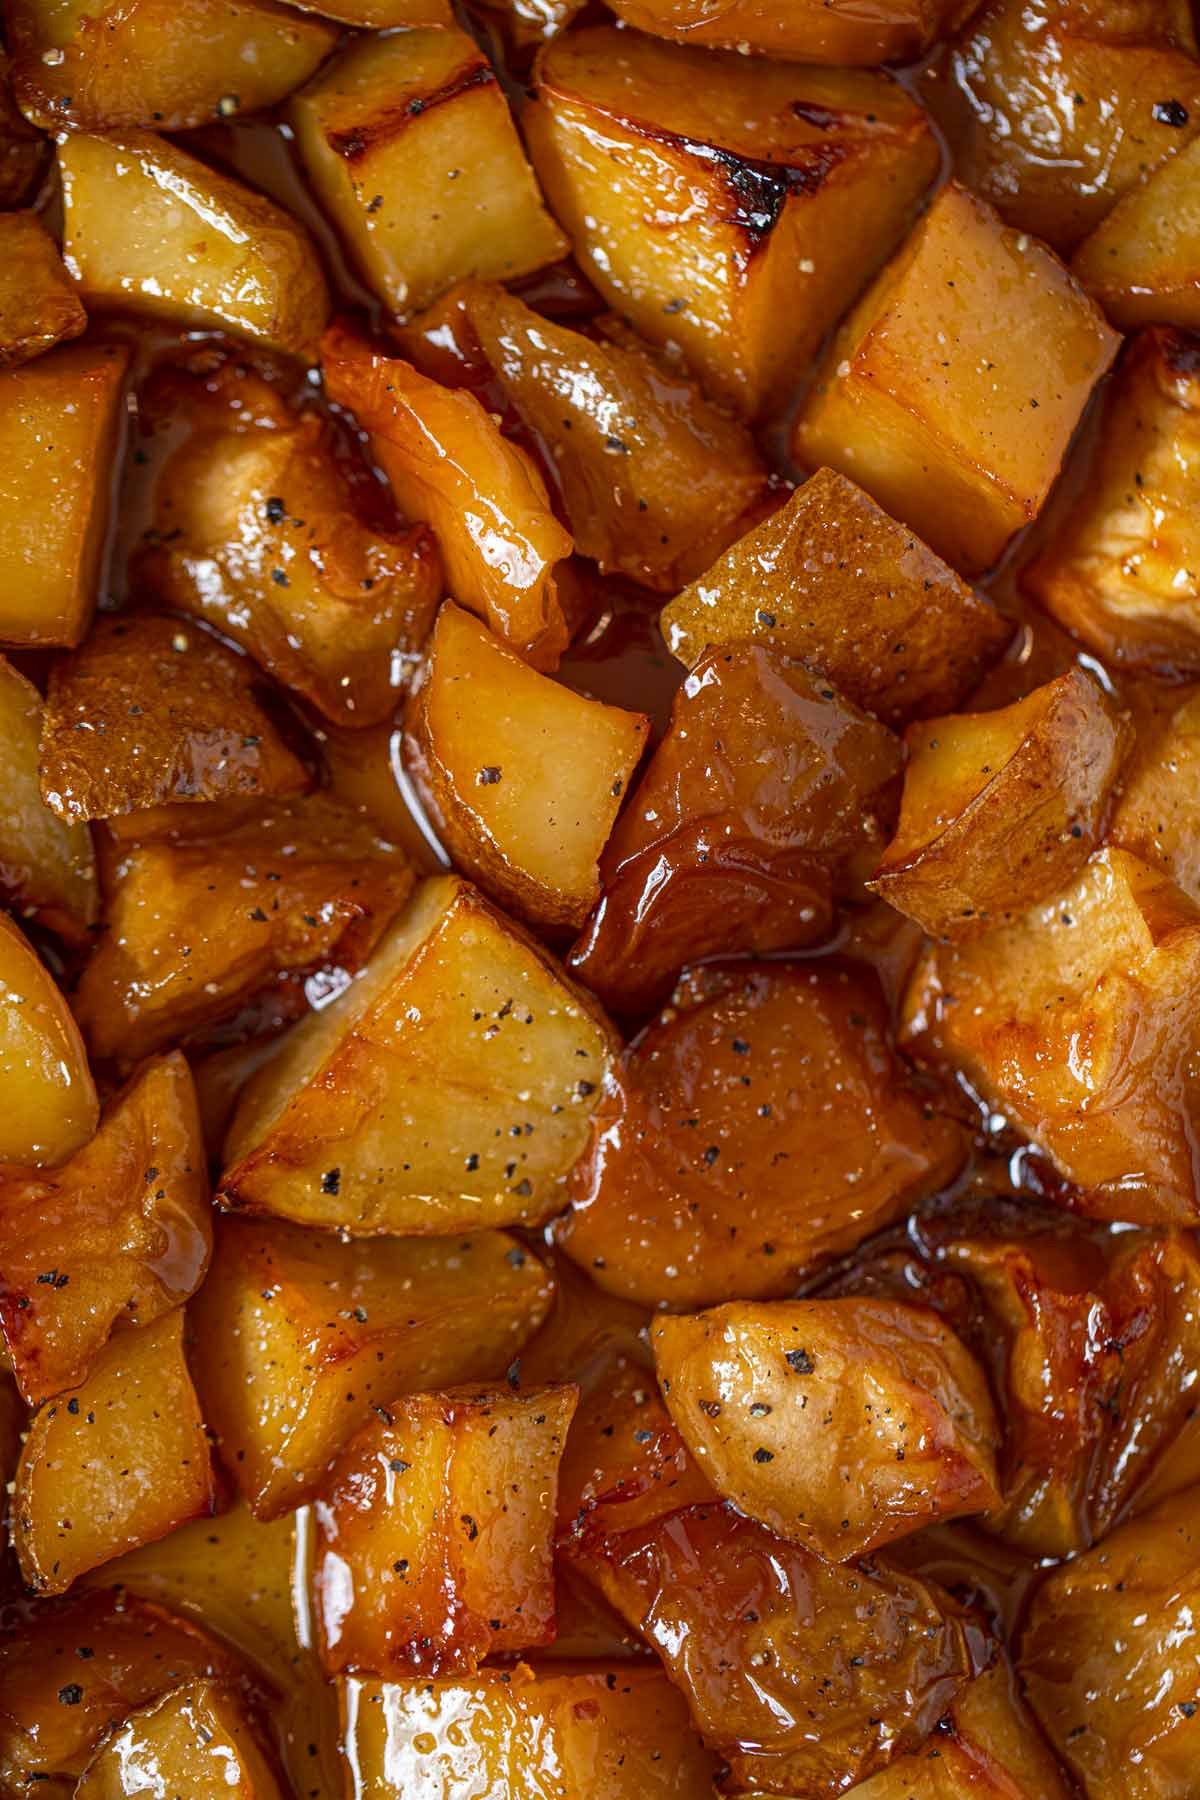 Honey Roasted Apples and Potatoes close up view